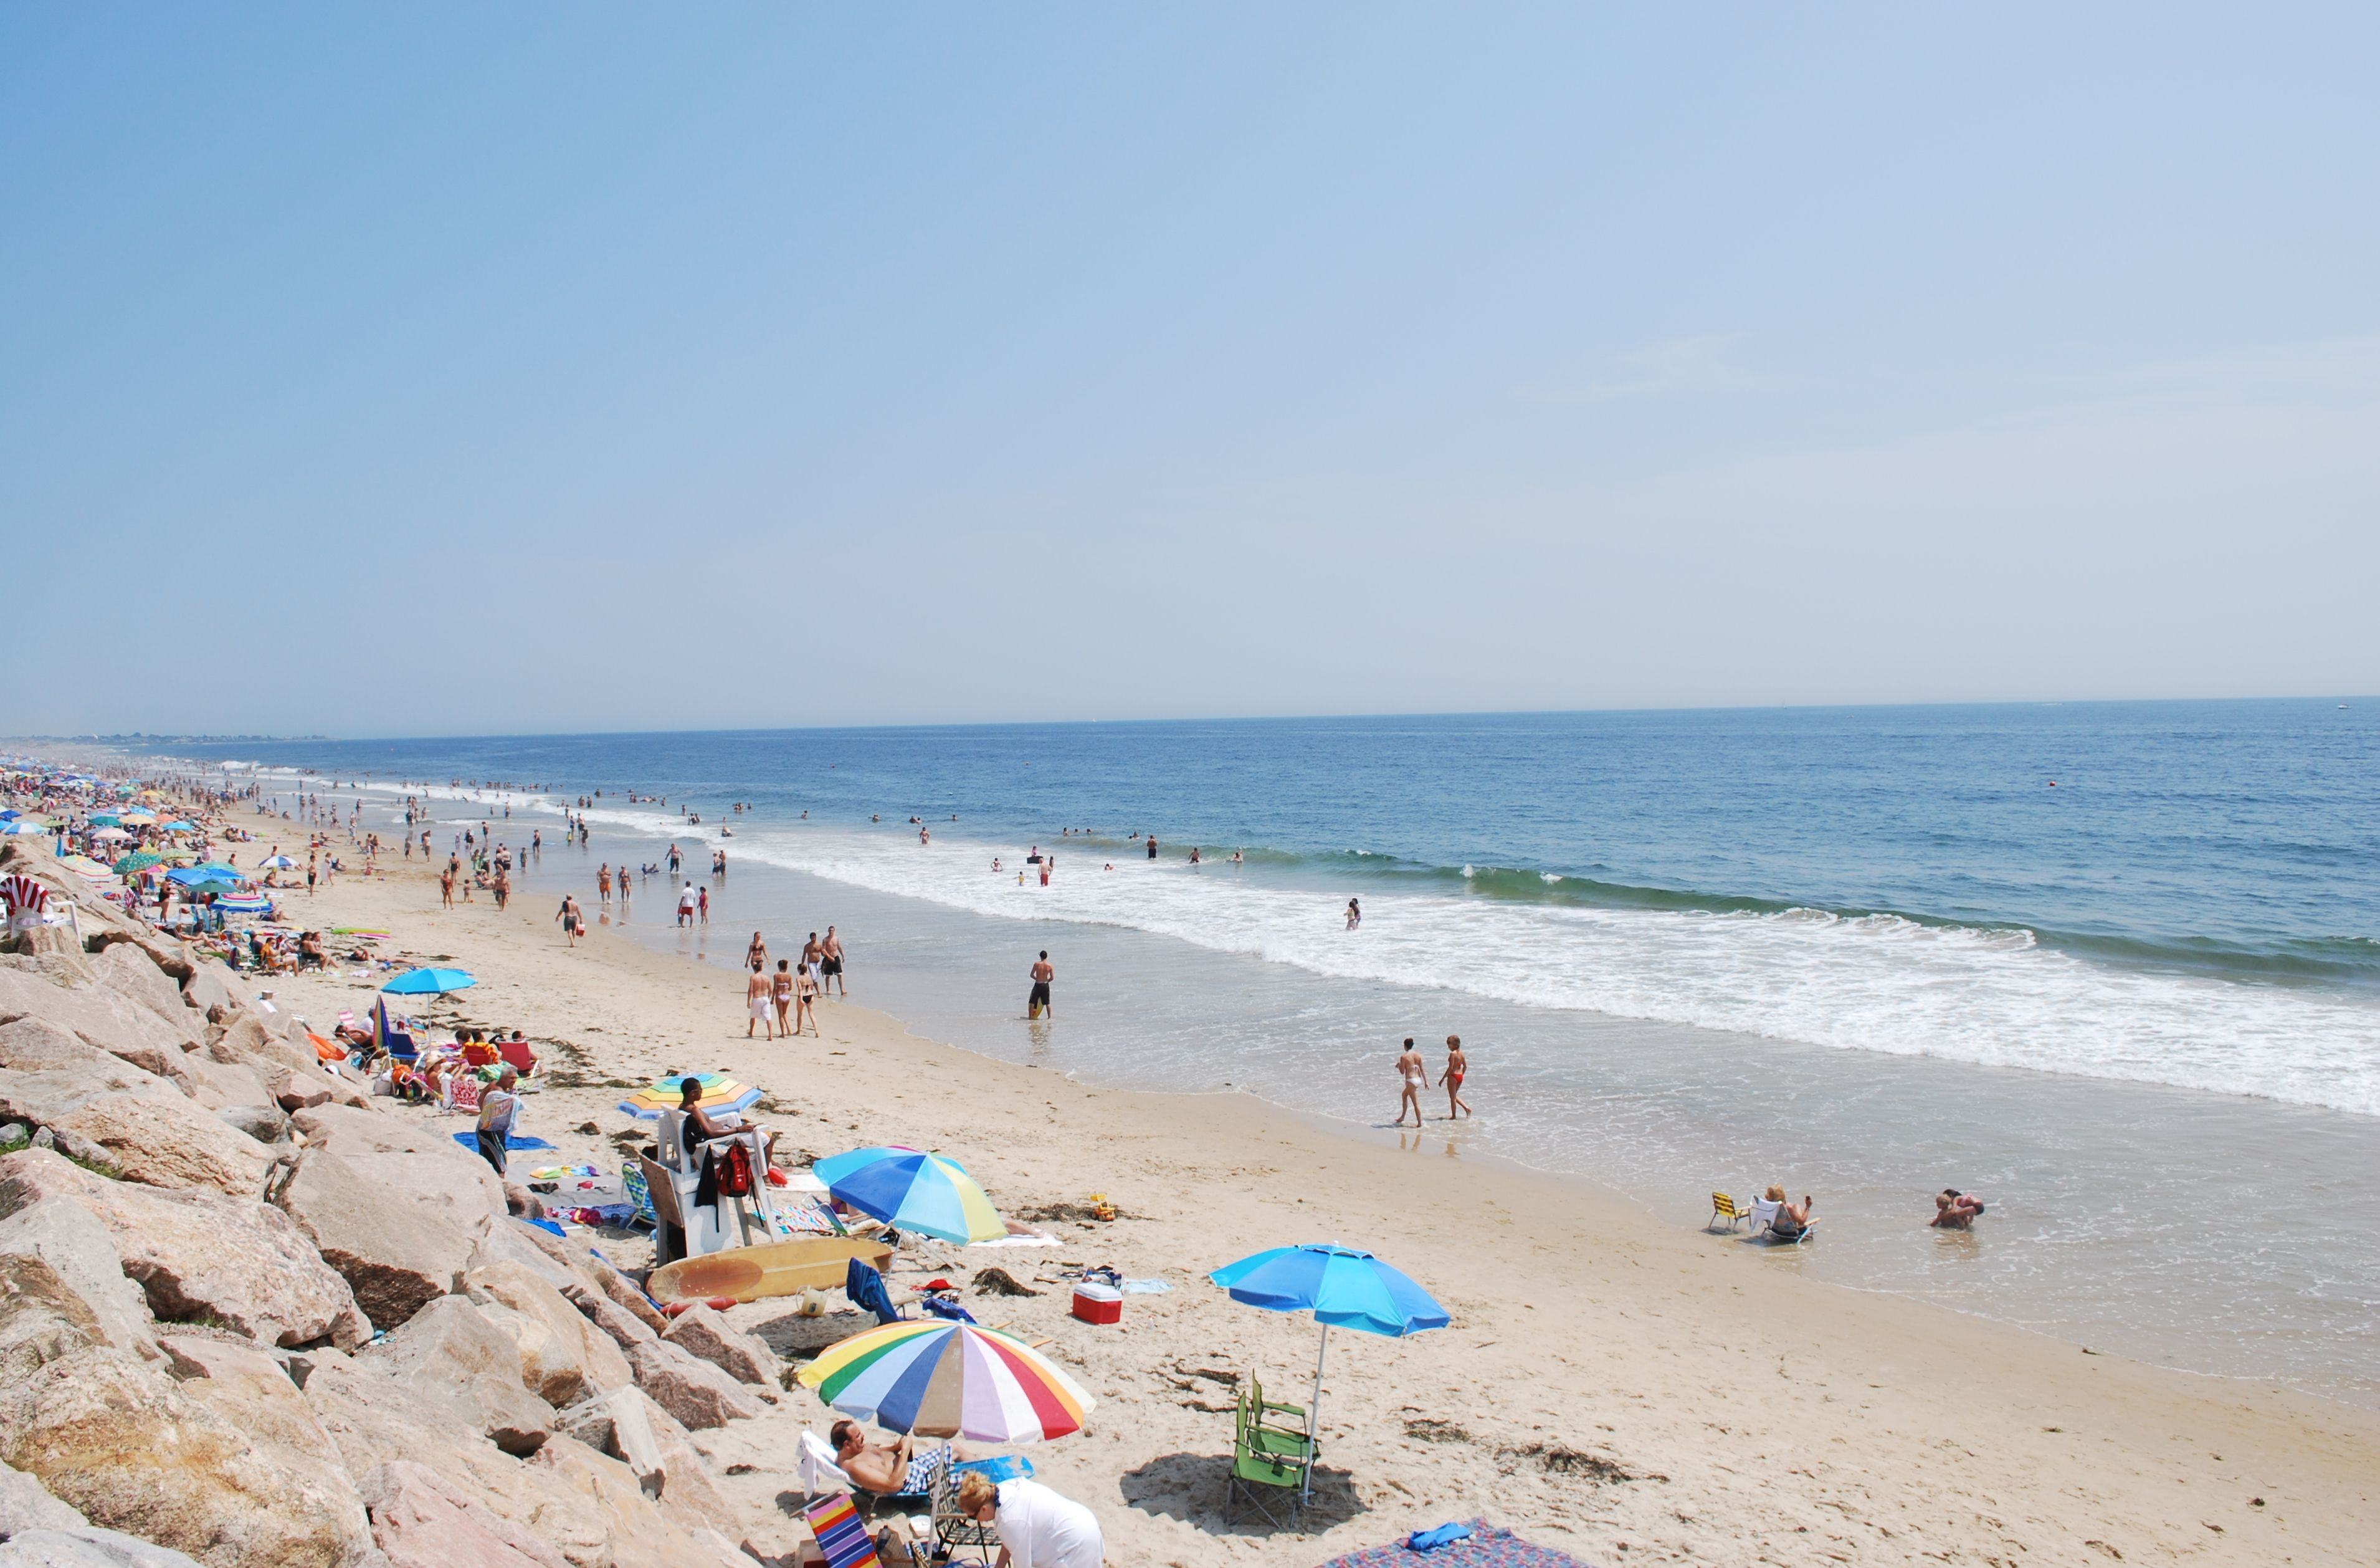 Misquamicut Beach Ri Just 20 Minutes From Our Home